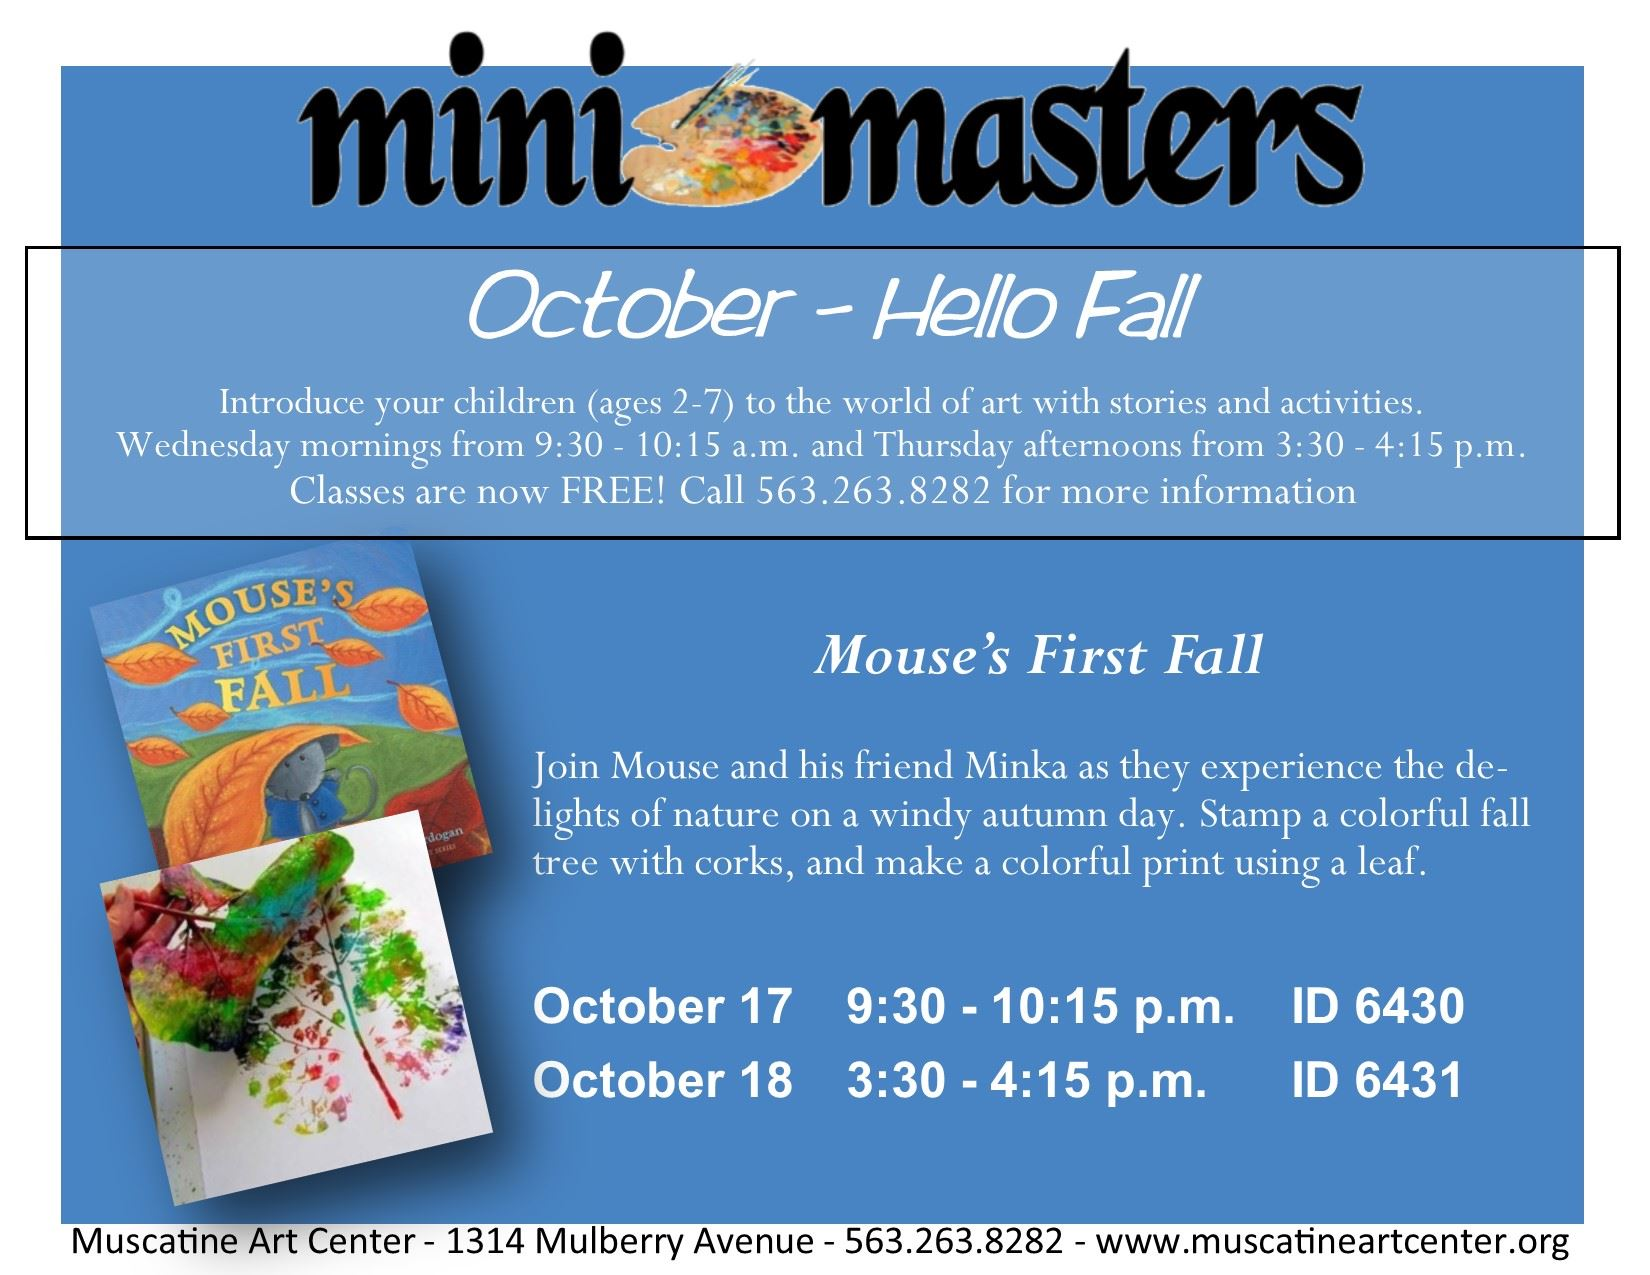 October 17-18 - mini masters - Mouses First Fall